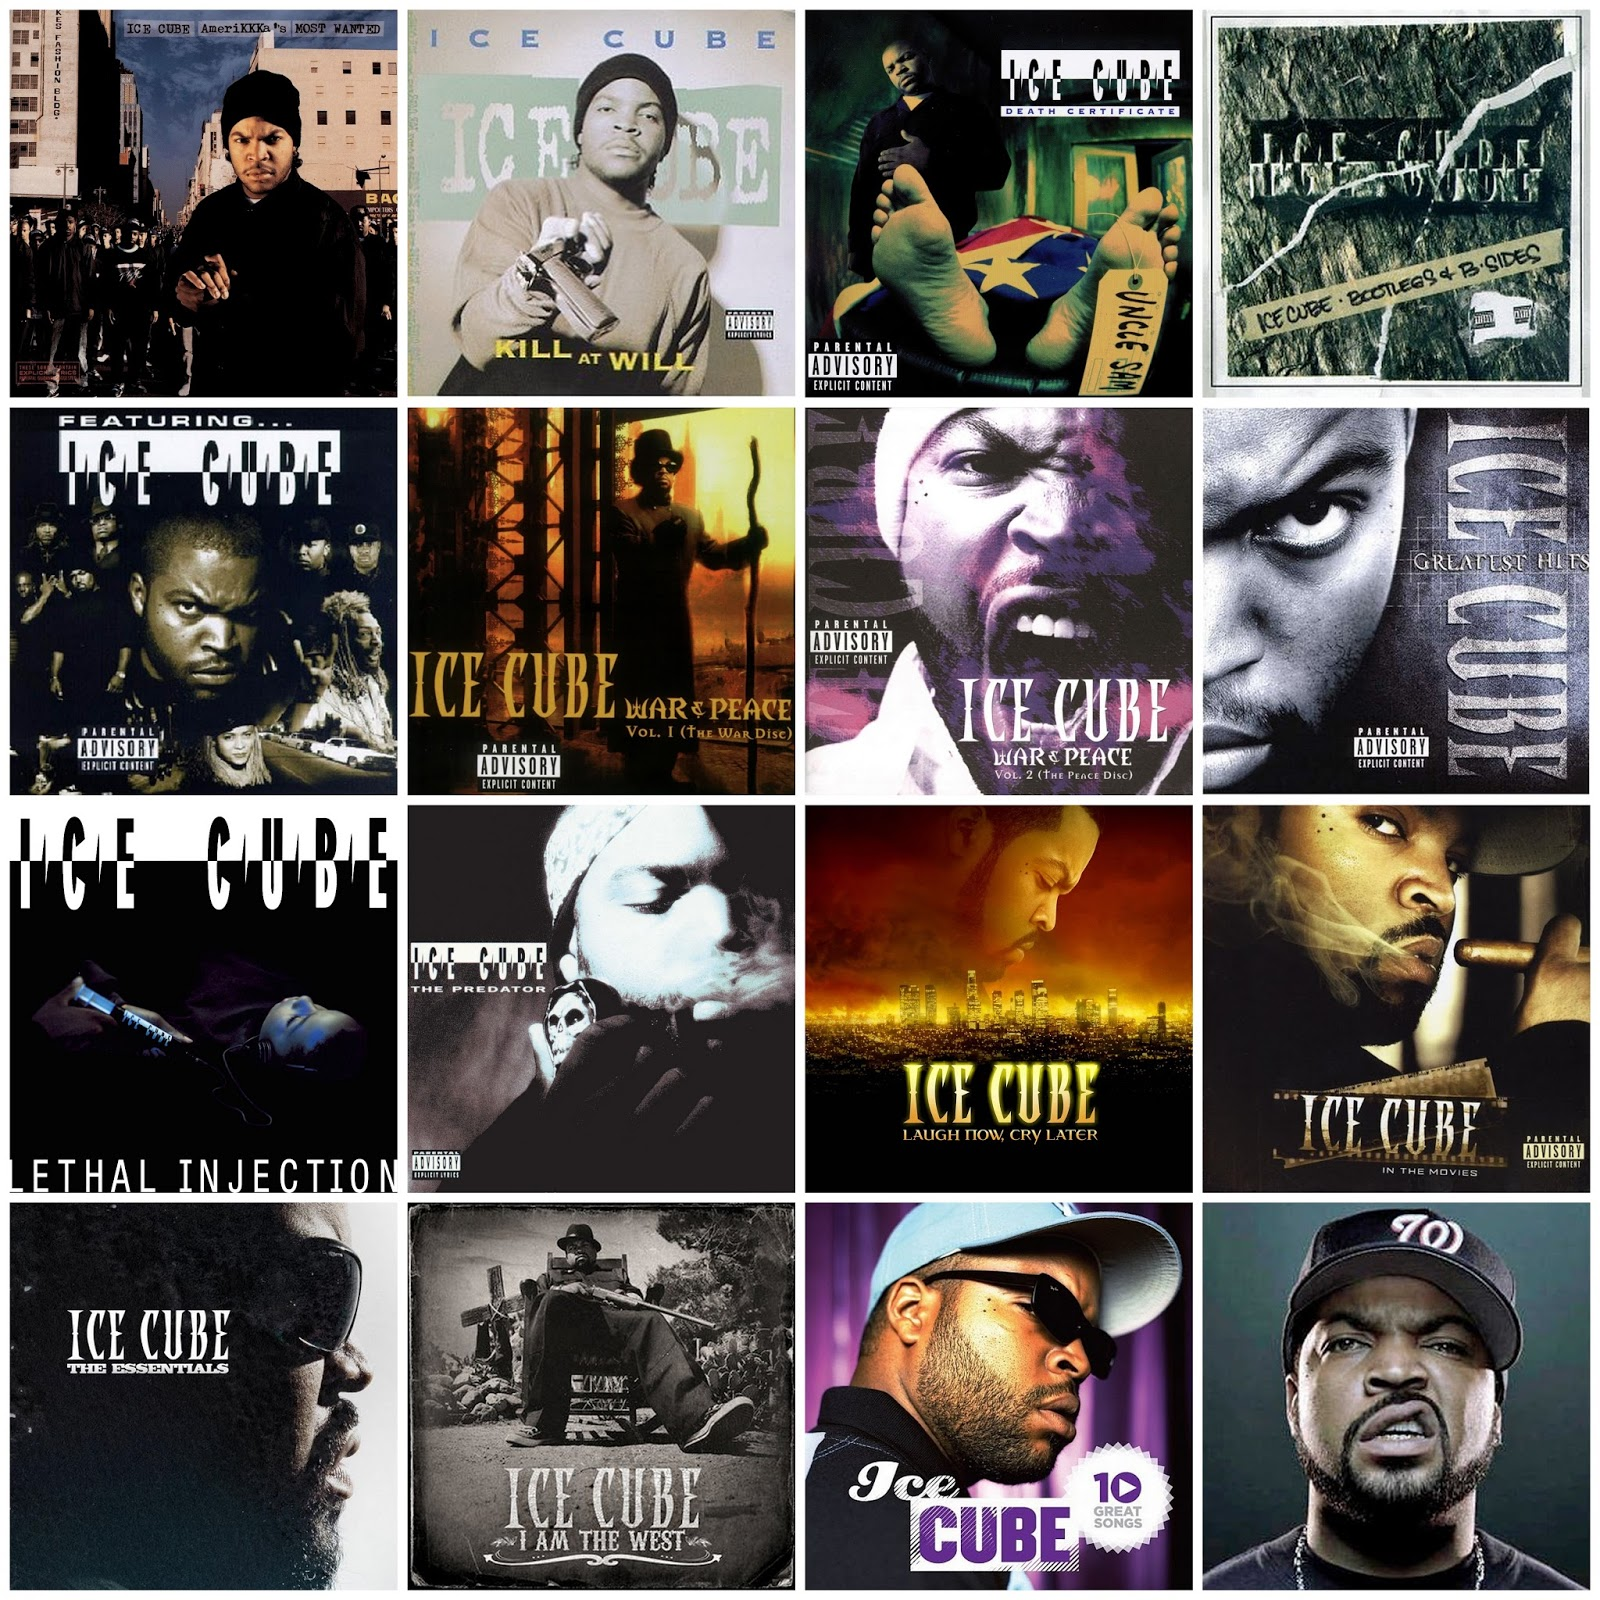 Top 100 Hip Hop Albums Of The 1980s